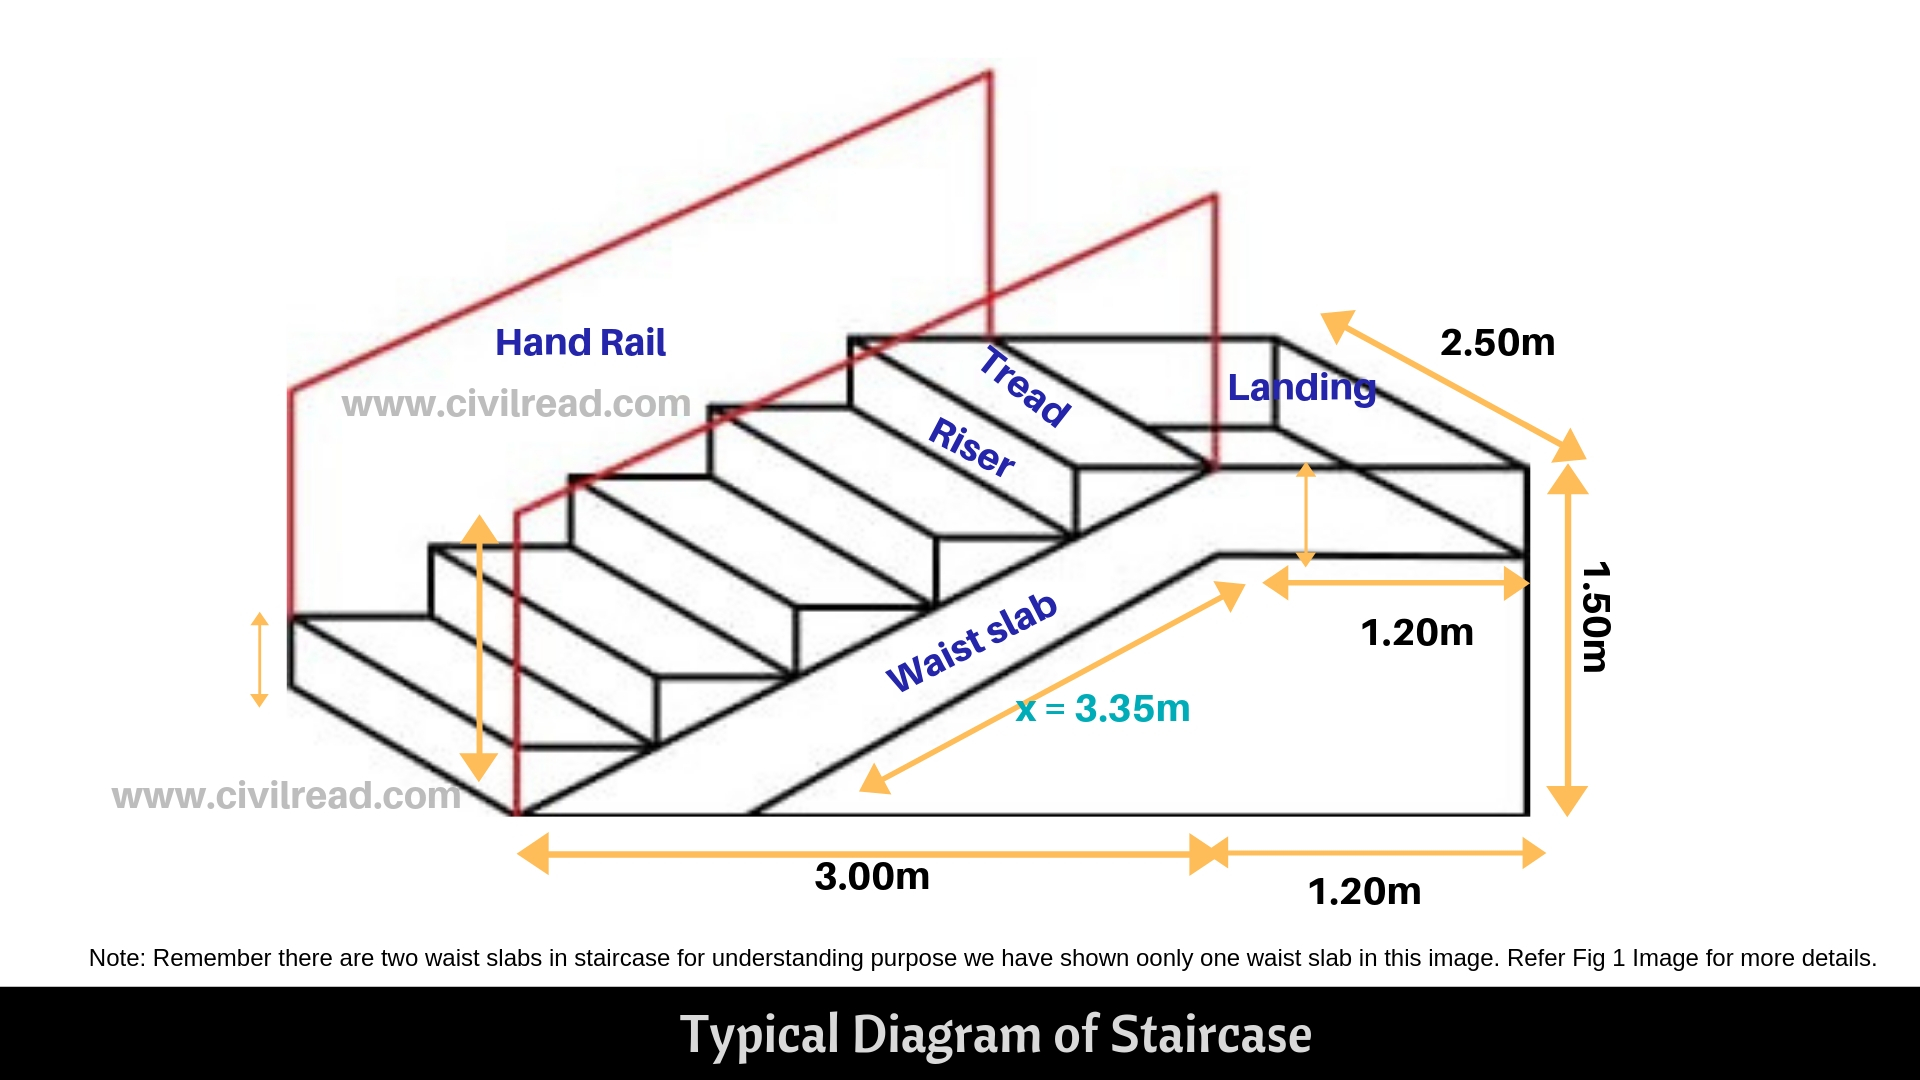 Concrete volume calculation for Staircase